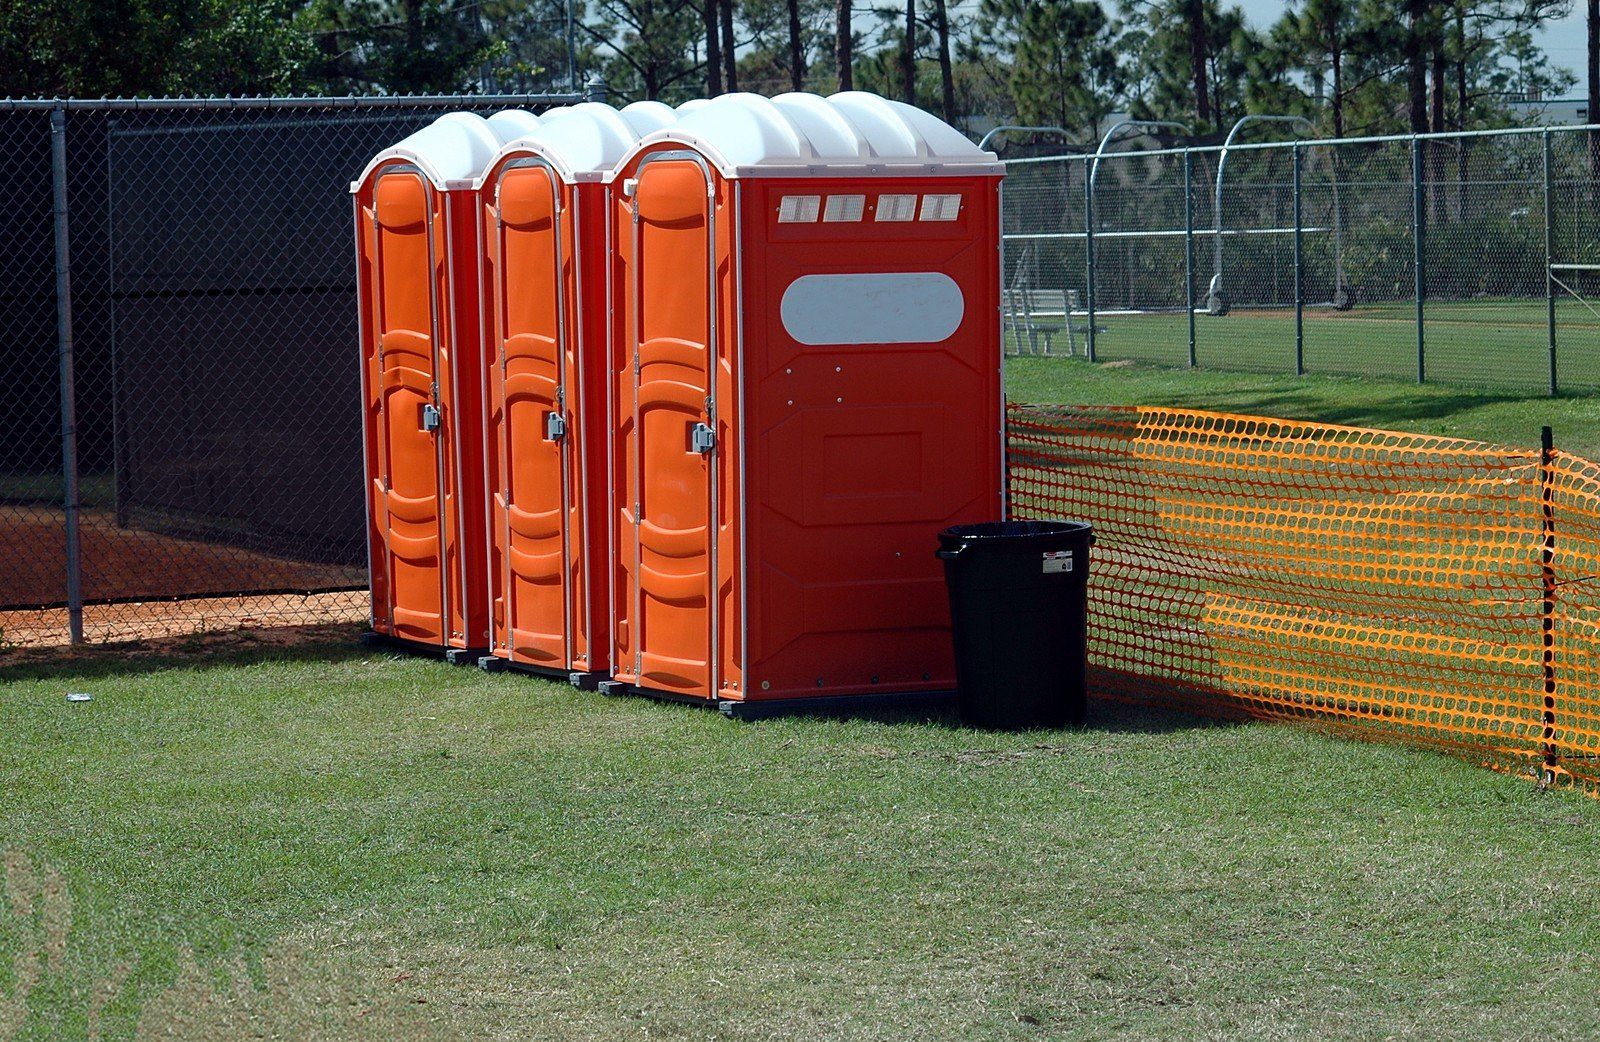 Rent event restrooms sporting events soccer football - Portable bathroom rentals for weddings ...